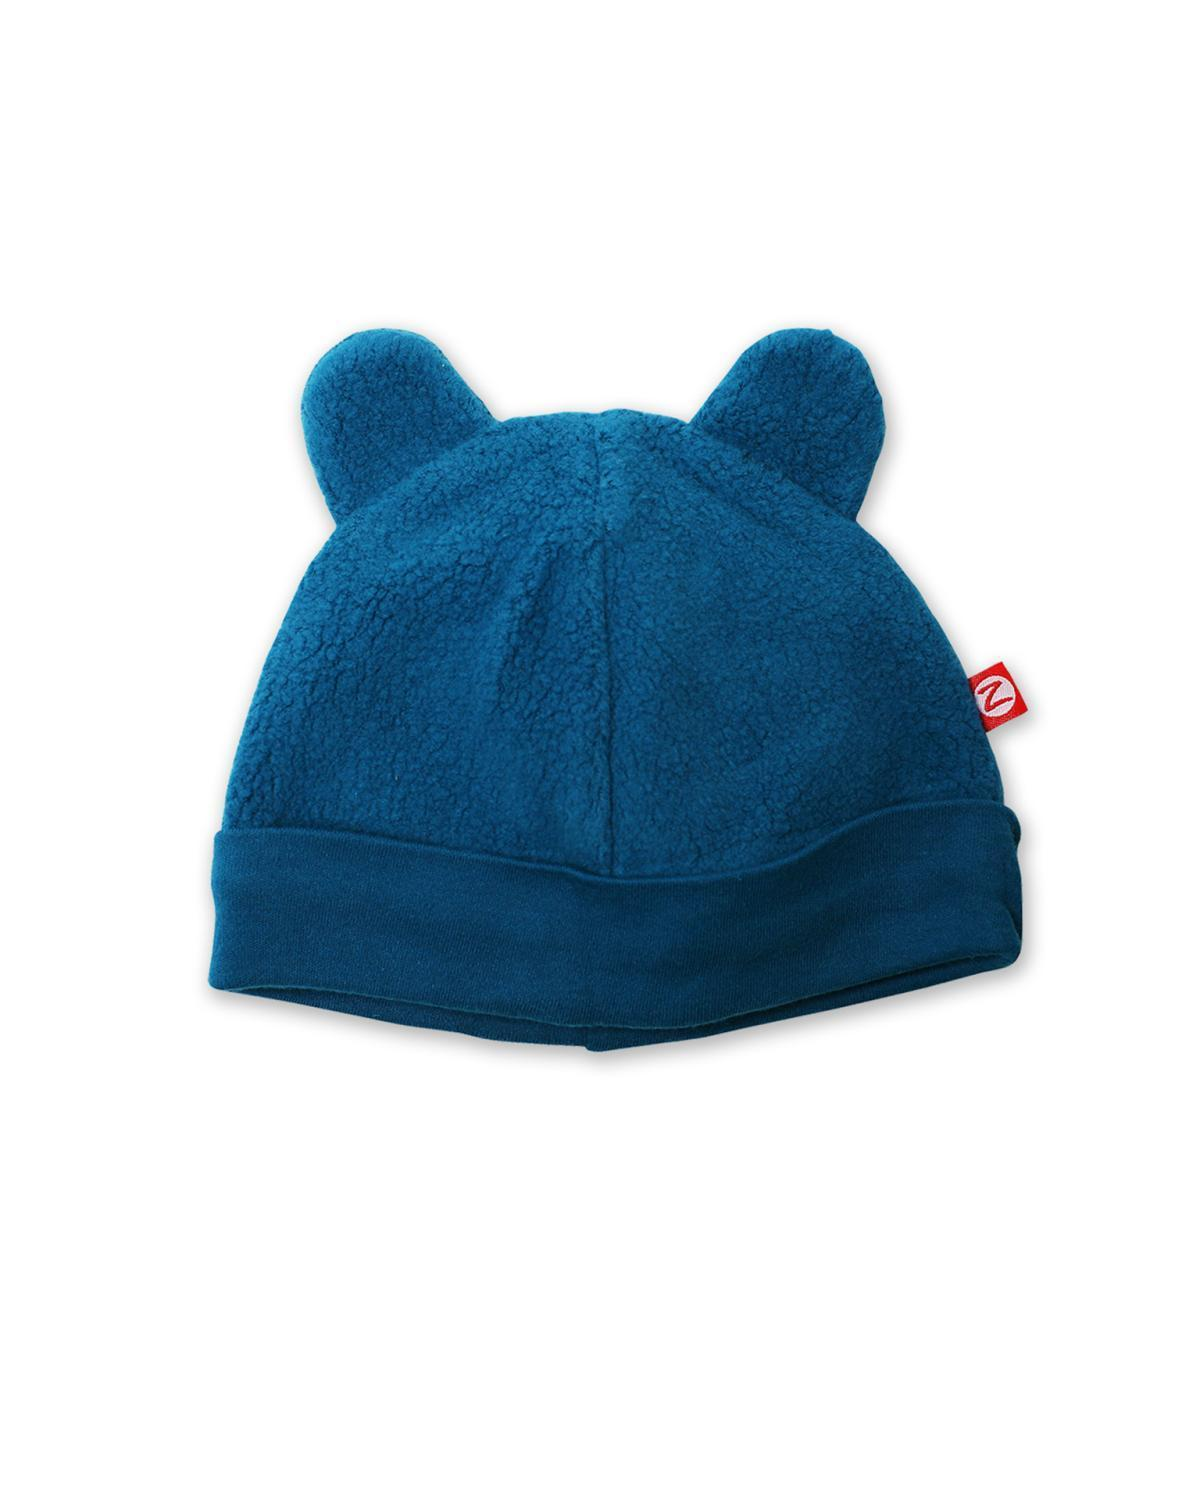 Little zutano accessories 3m Cozie Fleece Hat in Pagoda